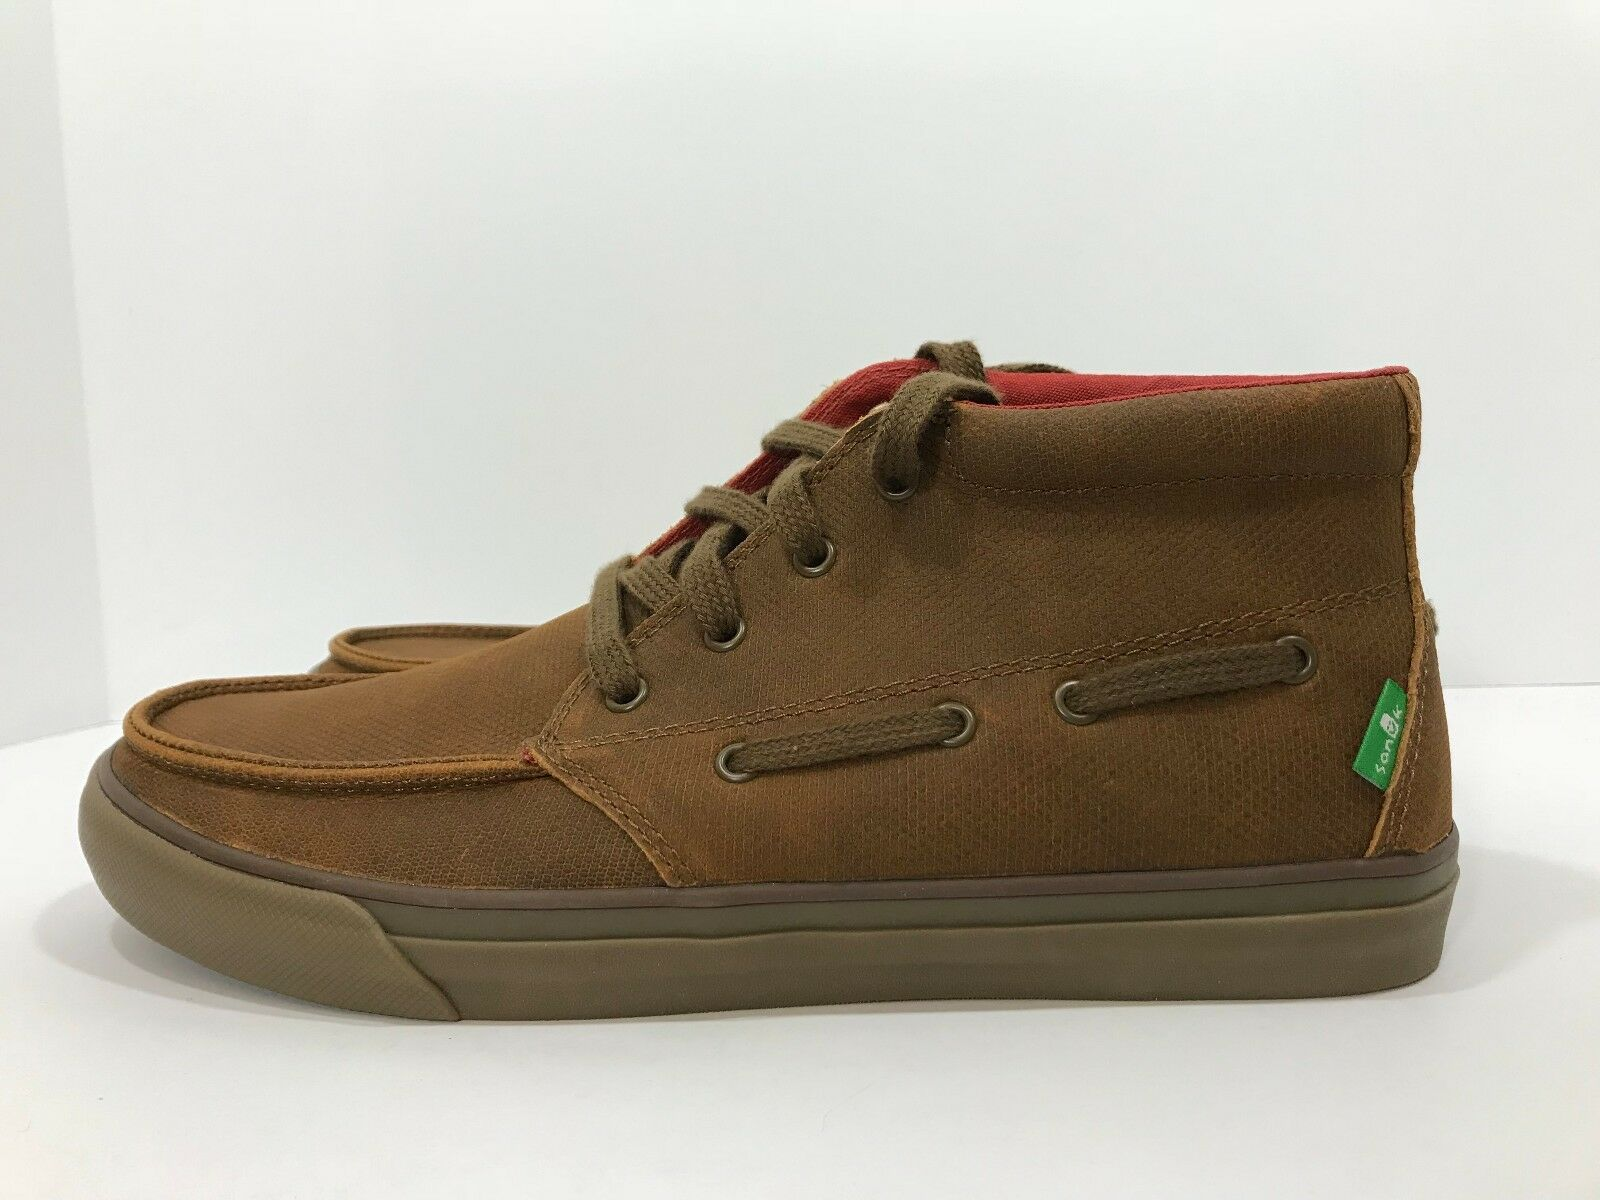 New Sanuk Sea Mid Deluxe Men's Sizes 8, 9 Brown Chukka Boots shoes